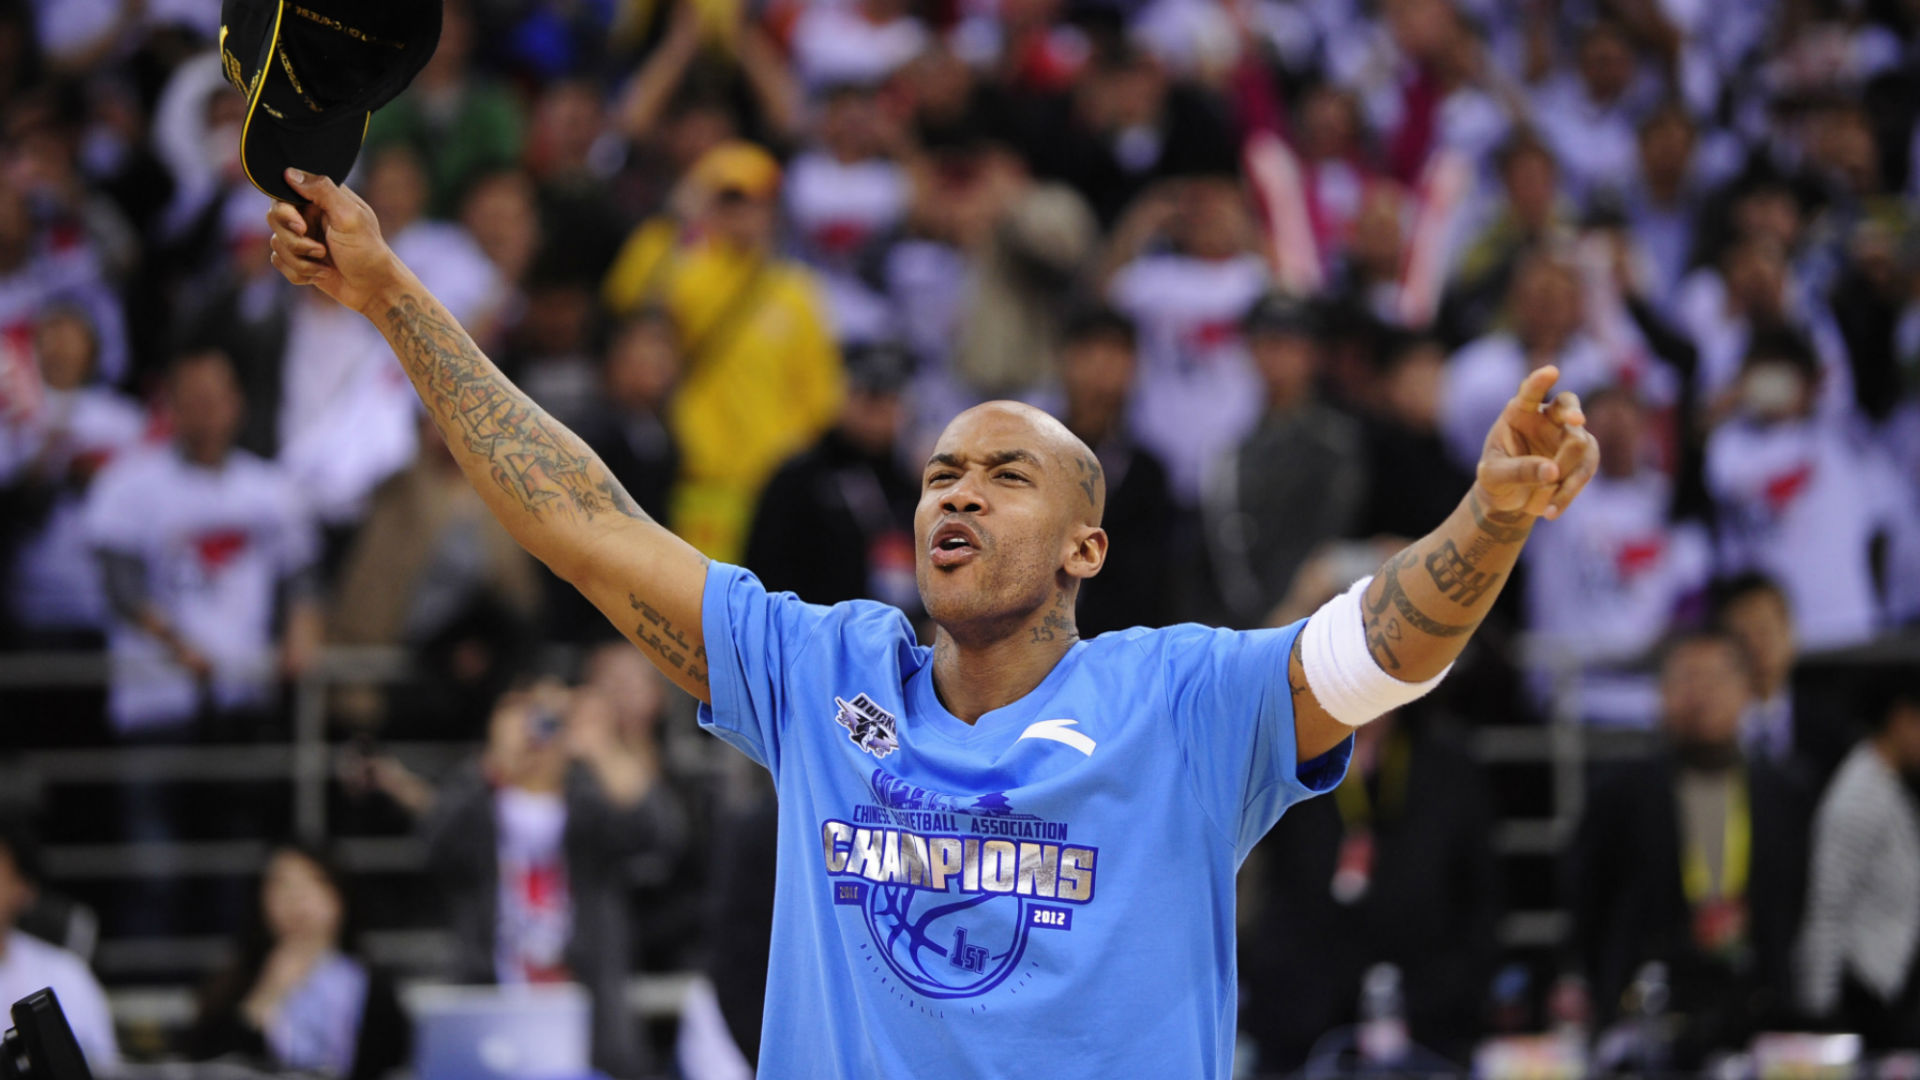 Stephon Marbury departs team that made him a star in China